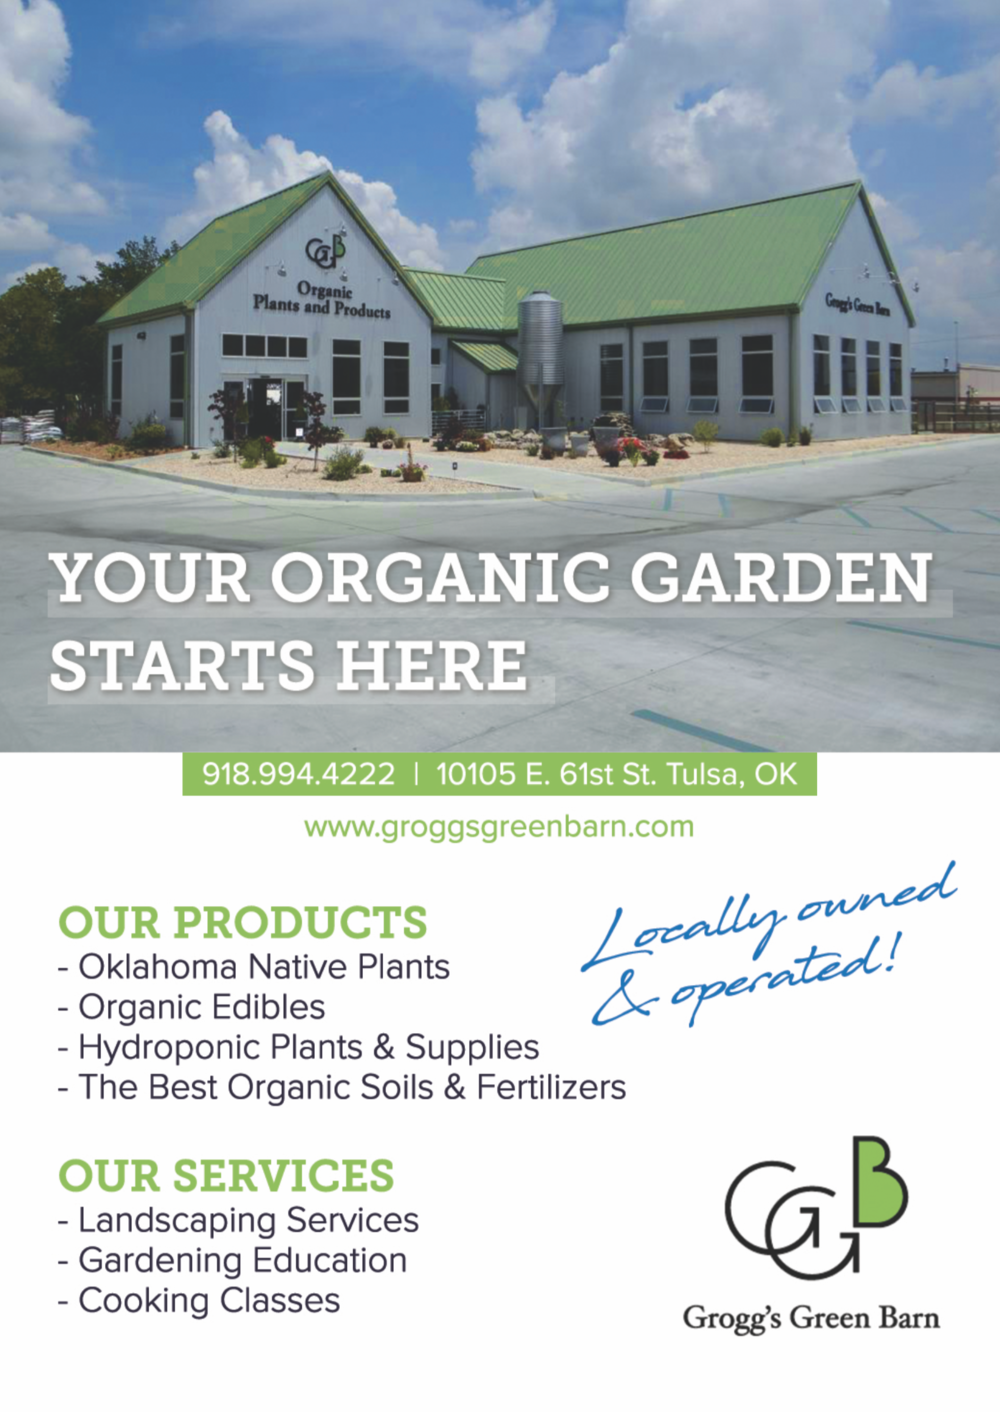 Grogg's Green Barn - Chatter Marketing